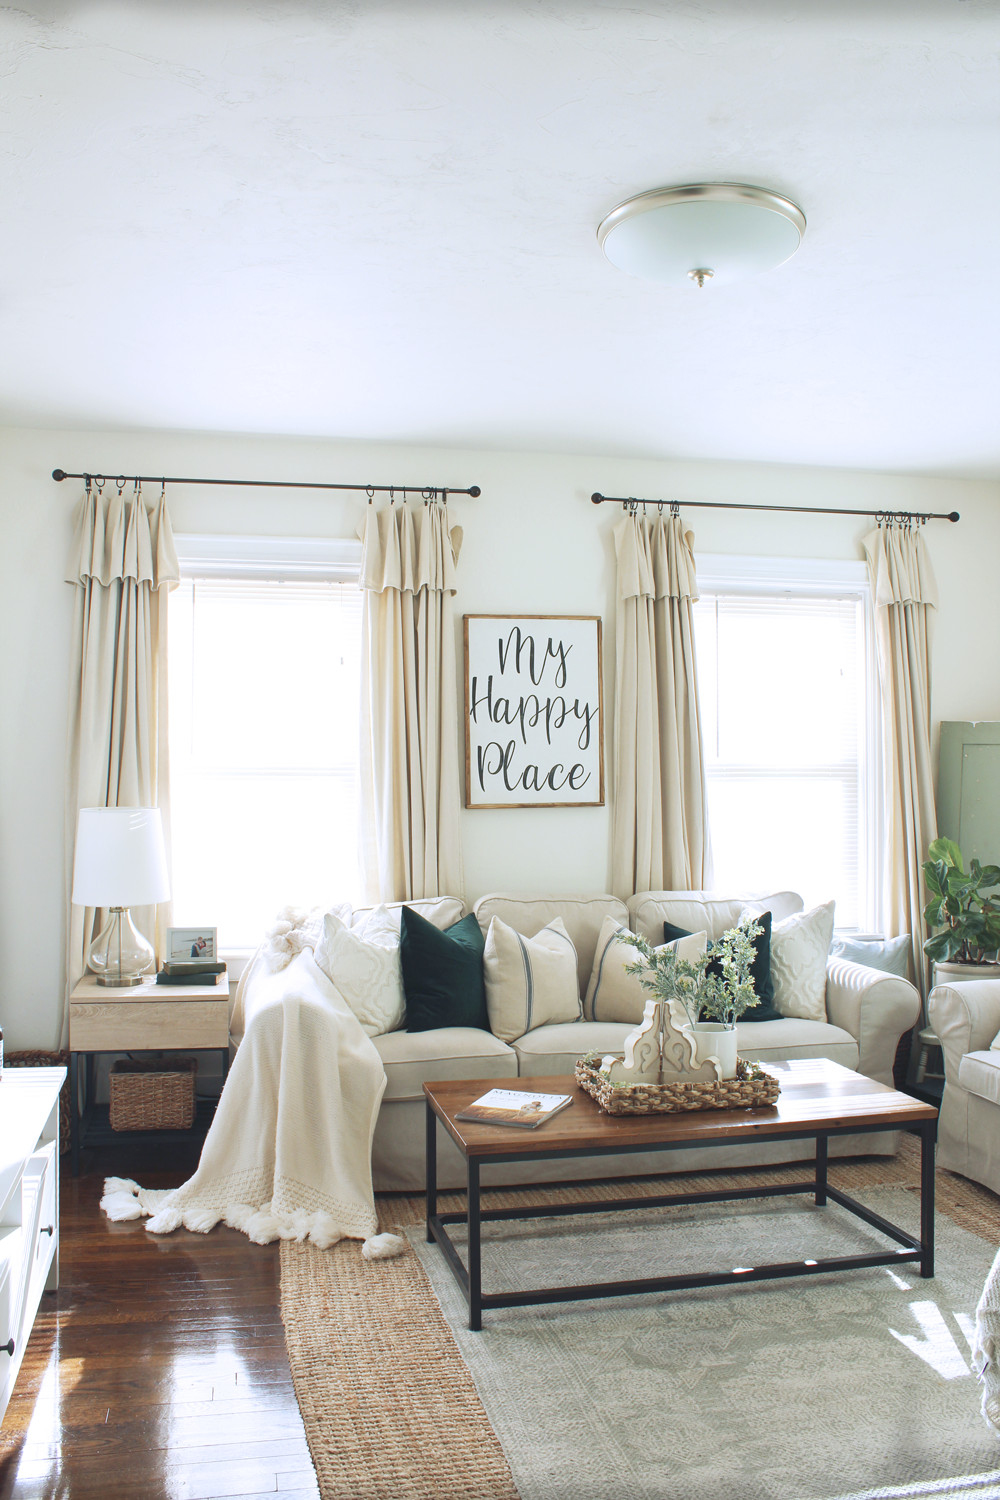 DIY Drop Cloth Curtains 2 Ways- Inexpensive and easy DIY for the perfect farmhouse style curtains! | michealadianedesigns.com